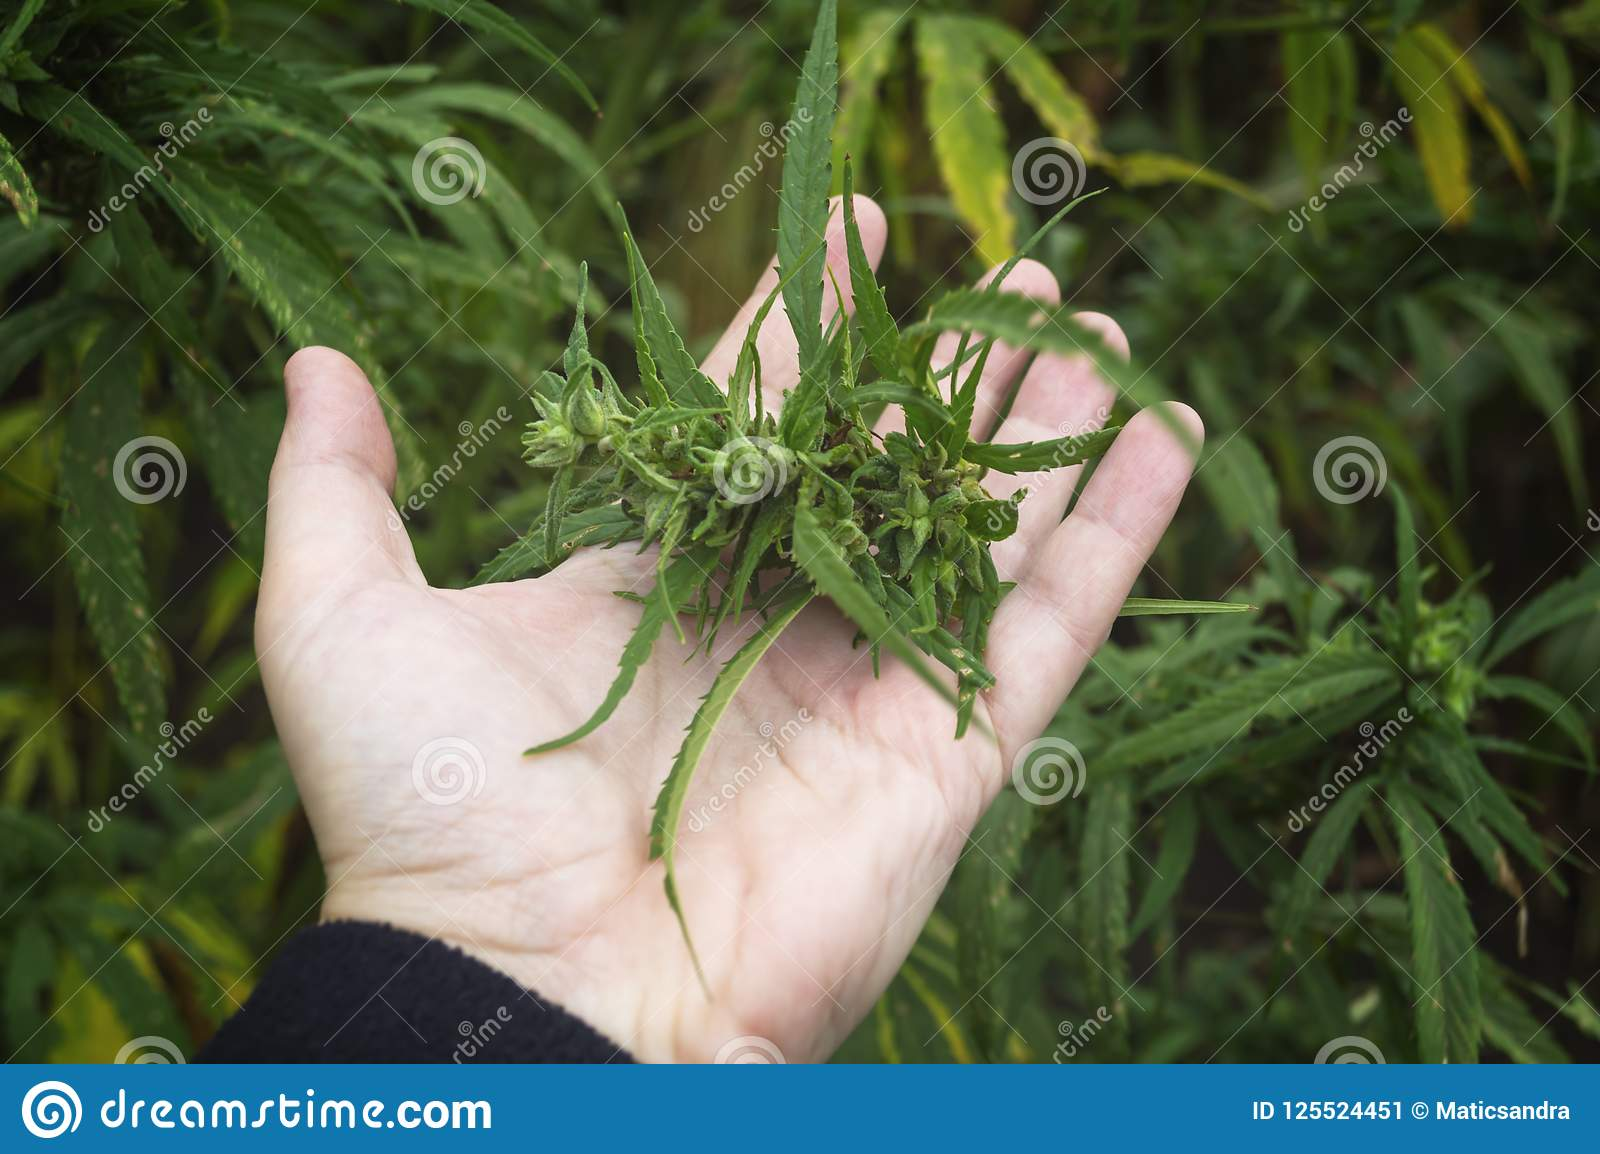 Farmer examination marijuana Cannabis sativa flowering cannabis plant and bud